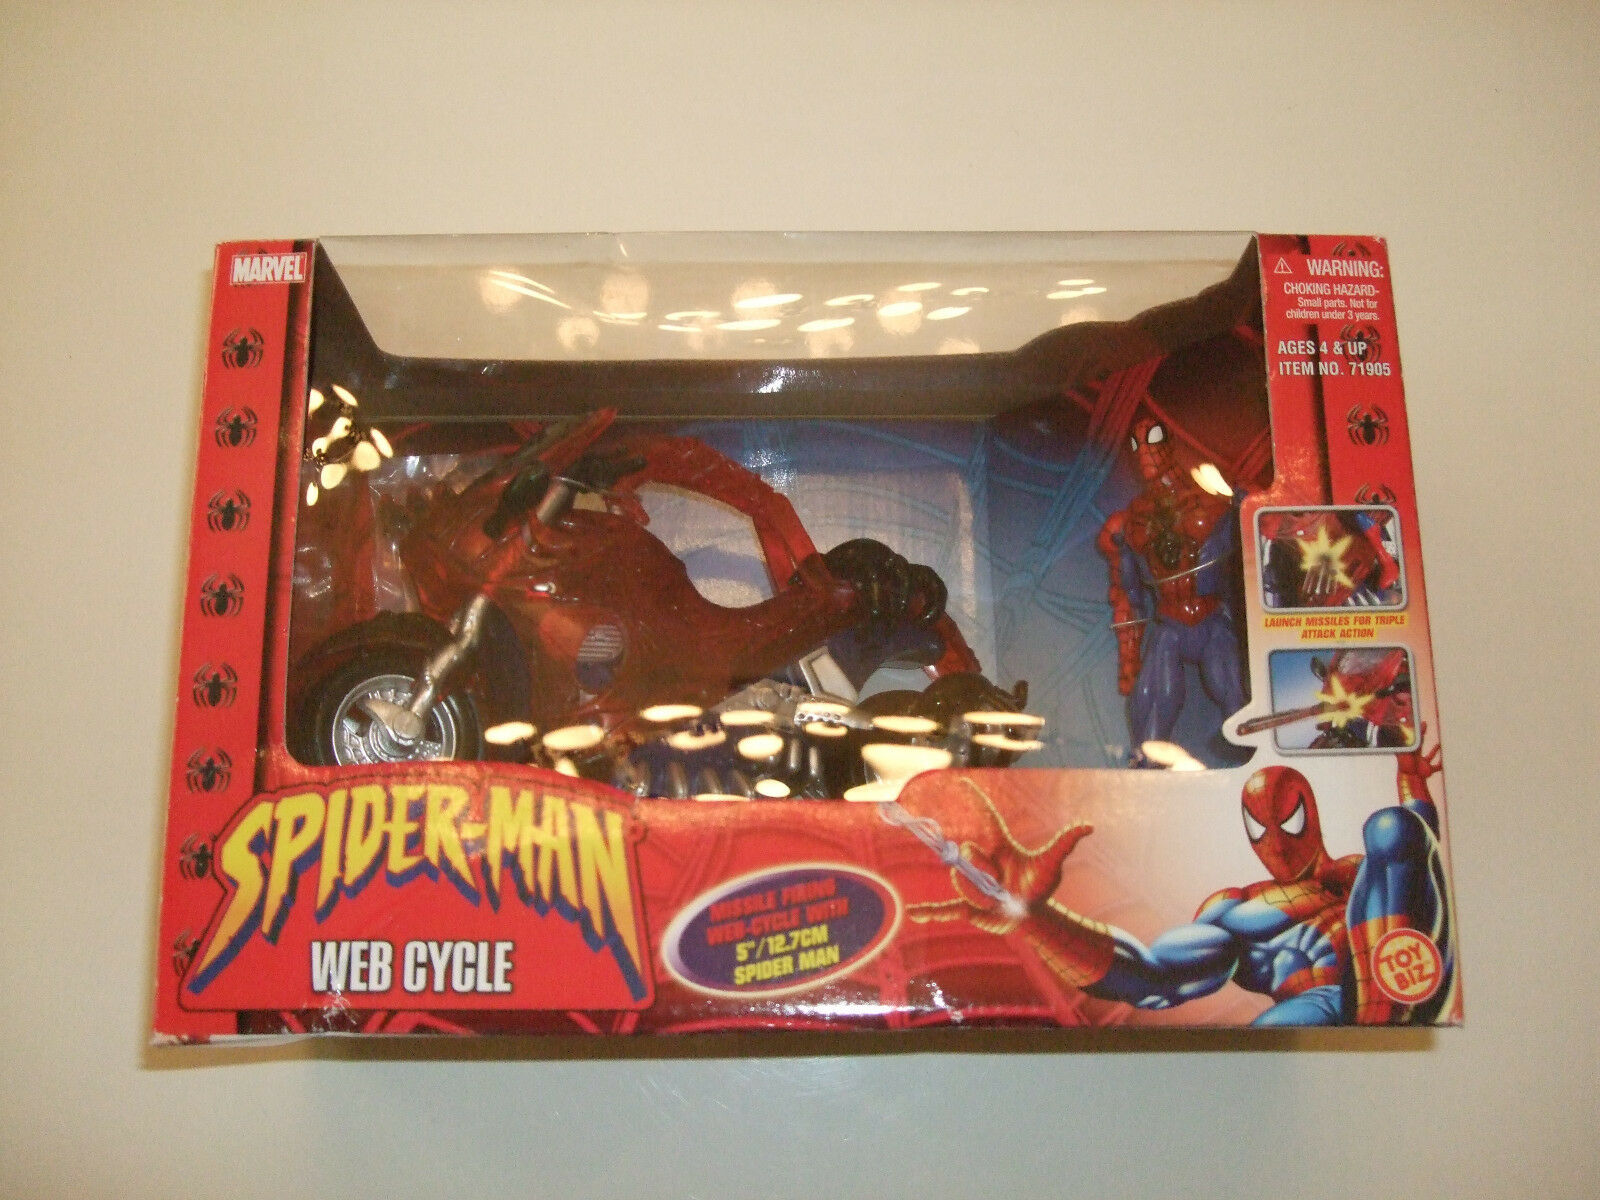 SPIDER-MAN WEB-CYCLE w 5 FIGURE SPIDEY MISSILE FIRING(MARVEL NOW SUPERIOR 123567